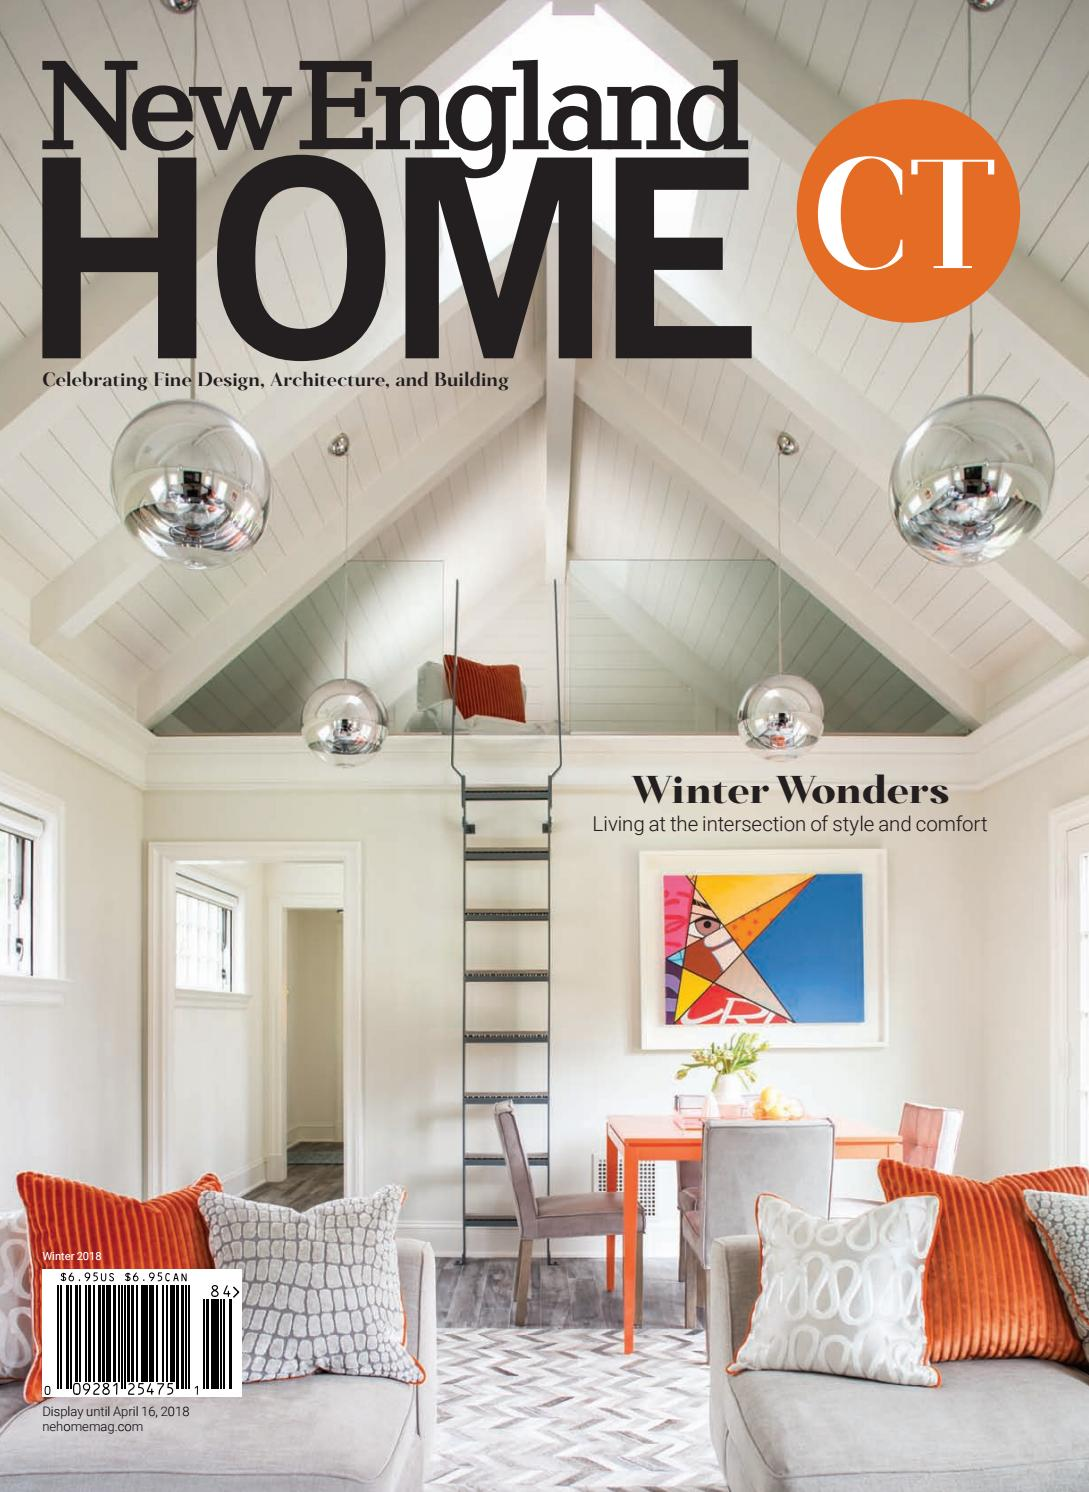 New england home connecticut winter 2018 by new england home magazine llc issuu